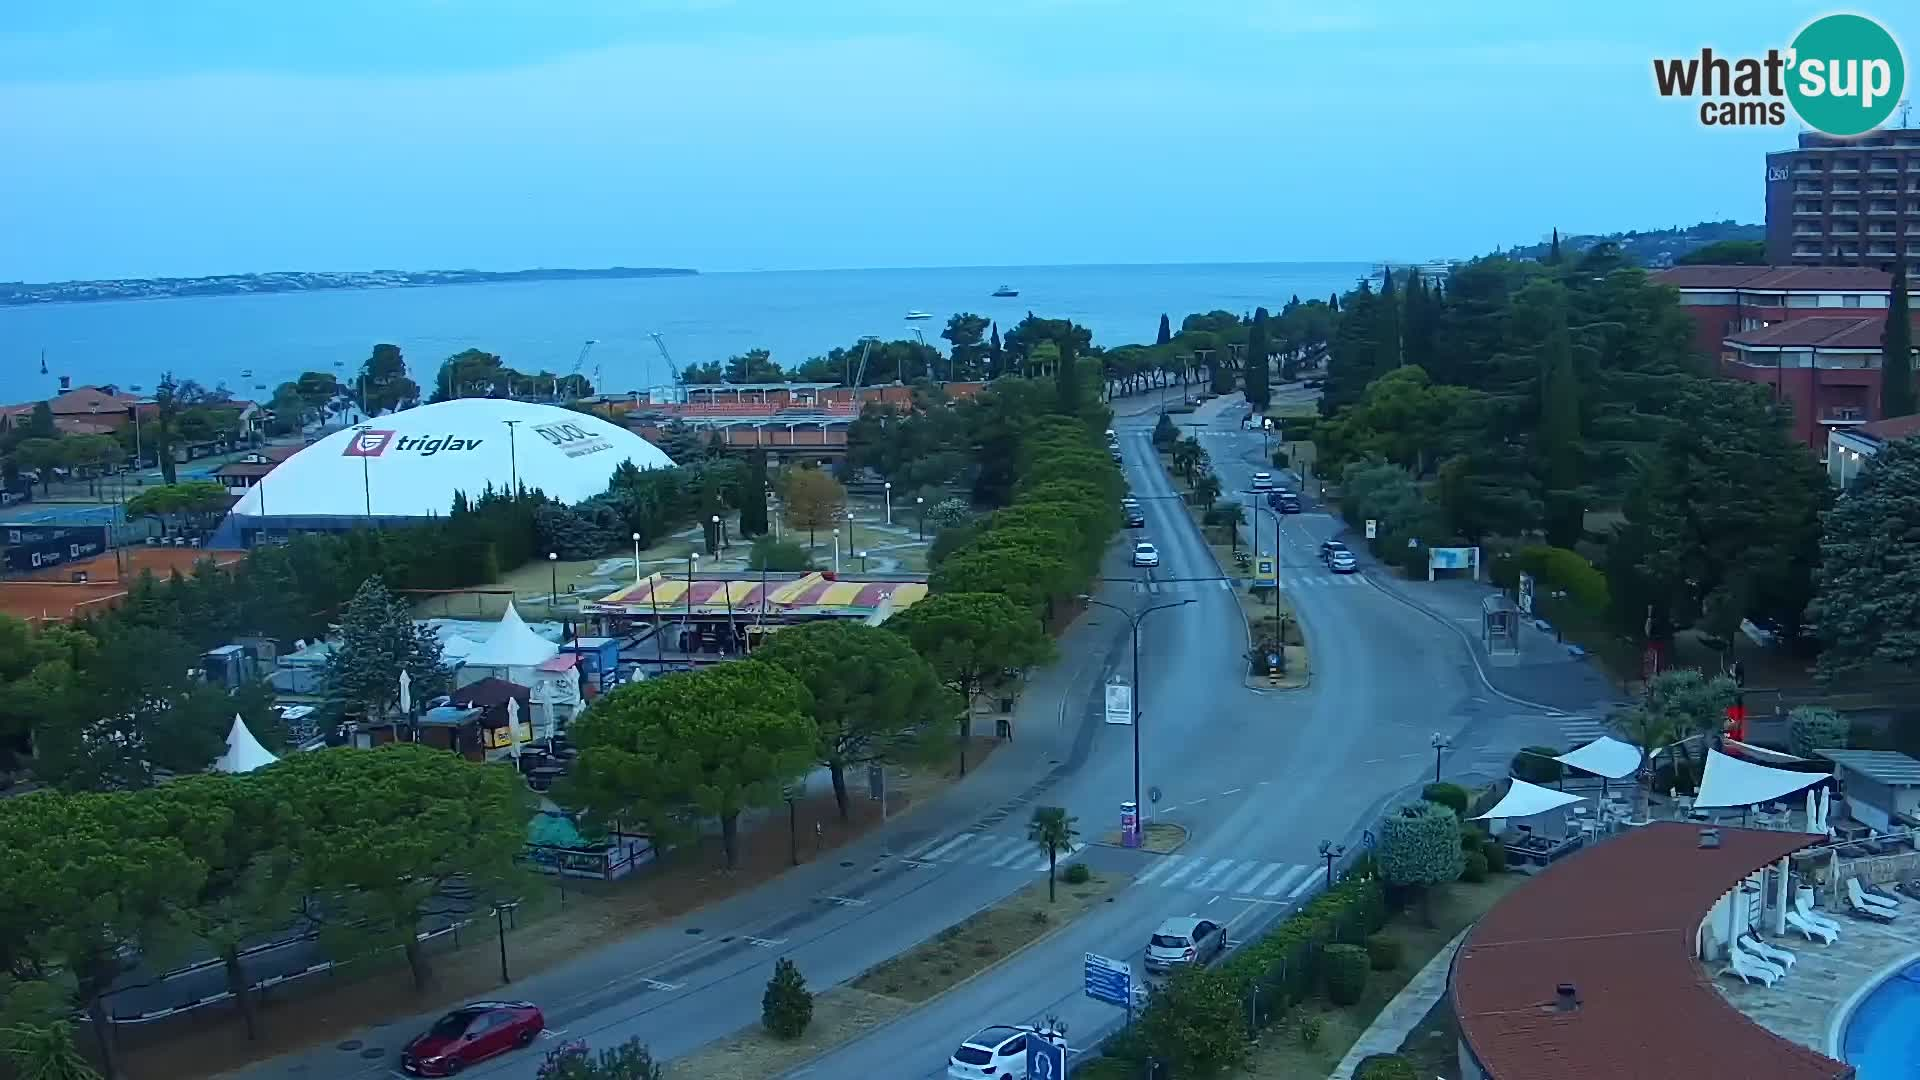 Portorož Live Webcam – view of the marina and tennis courts